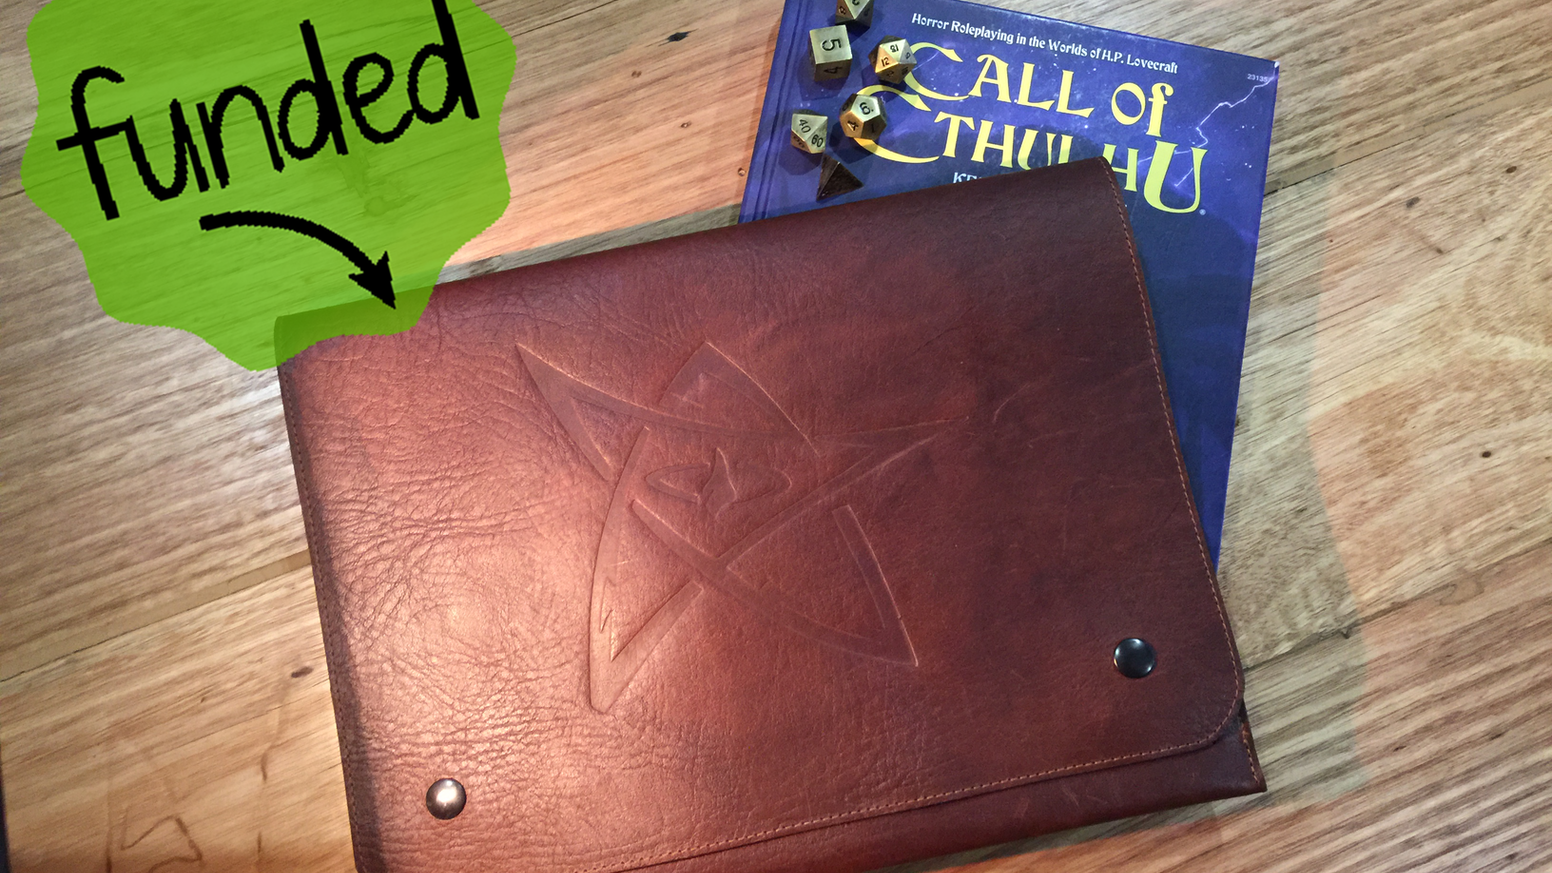 Call of Cthulhu document wallet, handmade from real leather, equipped with multiple pockets and embosssed with one of 3 designs.